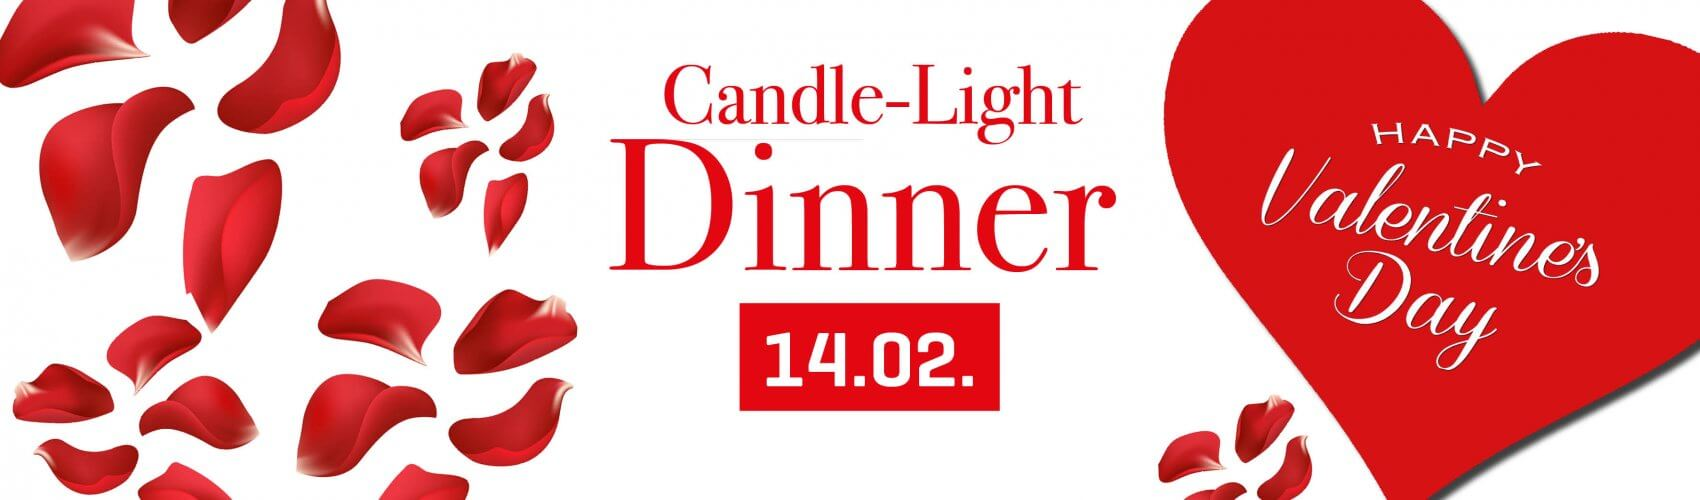 Valentins-Day-Candle-Light-Dinner